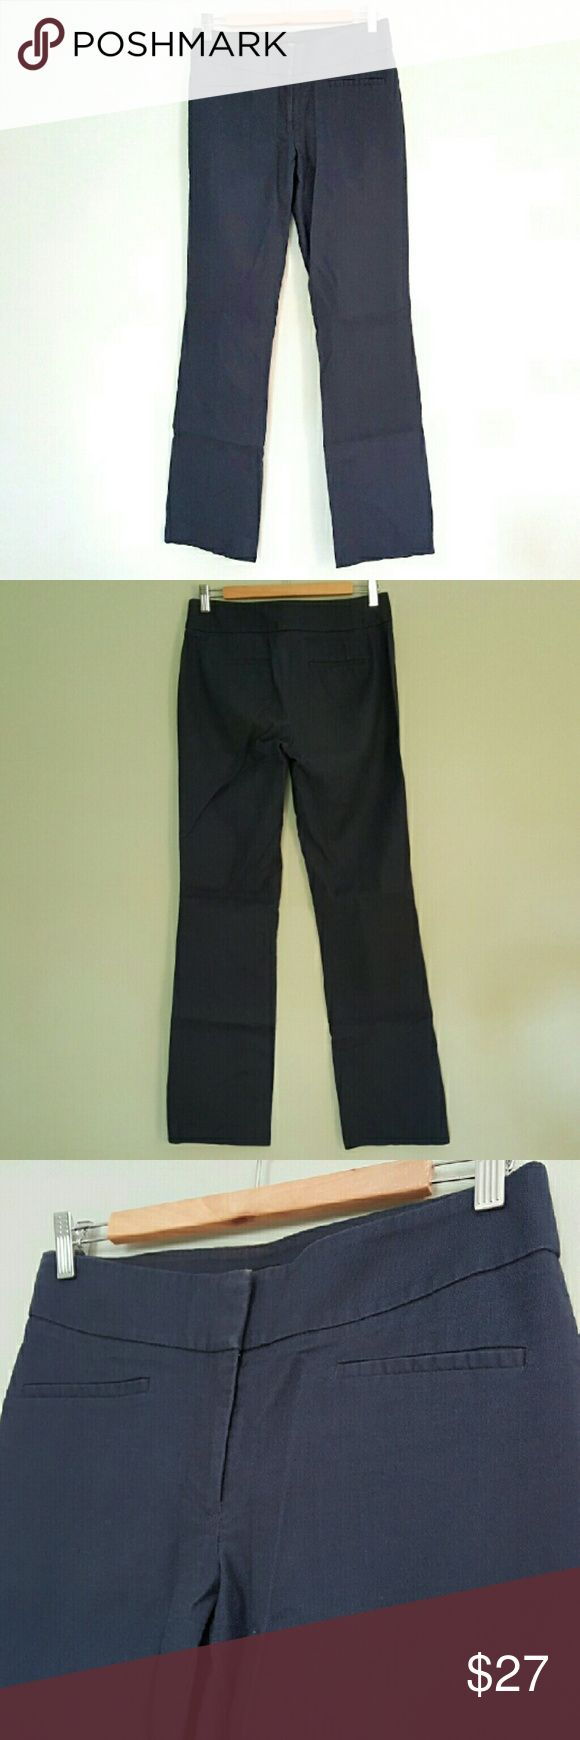 """Ann Taylor Loft Julie Bootcut Navy Dress Pants 2 T These classic dress pants come in a versatile navy blue. They are in good pre-owned condition with only minor signs of wear as can be seen in the third photo. They are a size 2 tall. The inseam is approximately 33"""" and the front rise is about 8.5"""". LOFT Pants Straight Leg"""